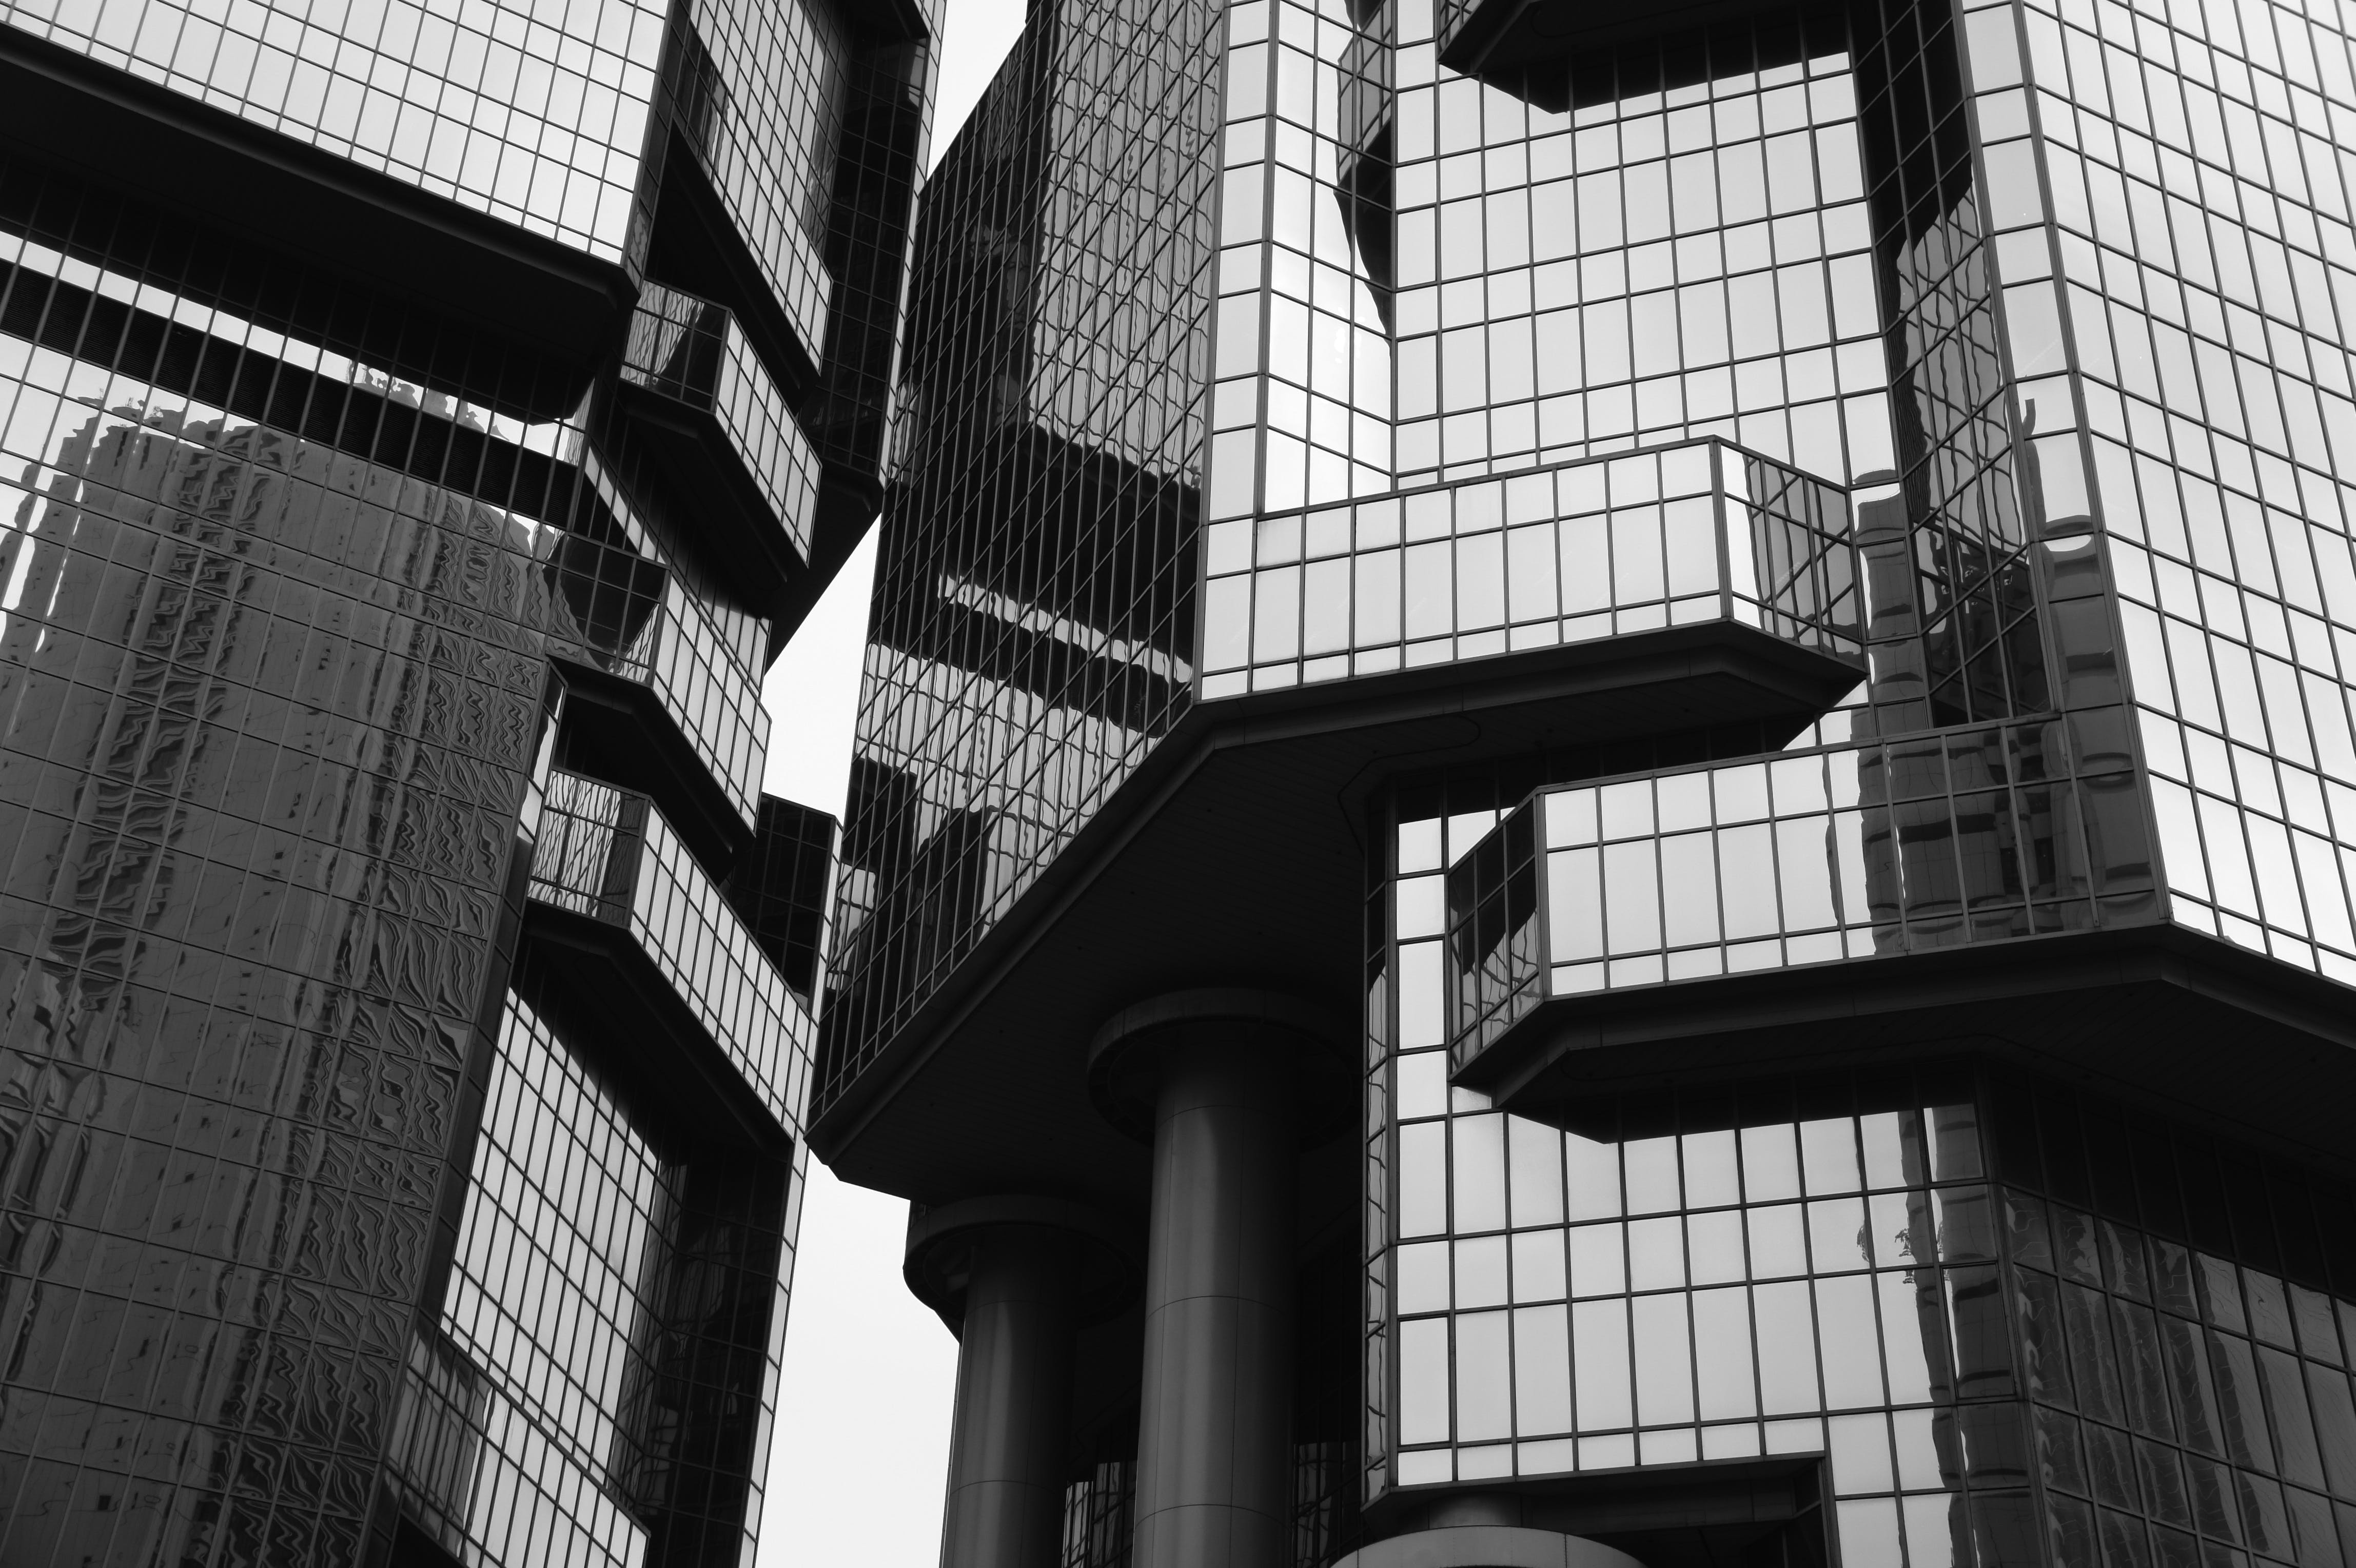 Grayscale Photo of Glass Building